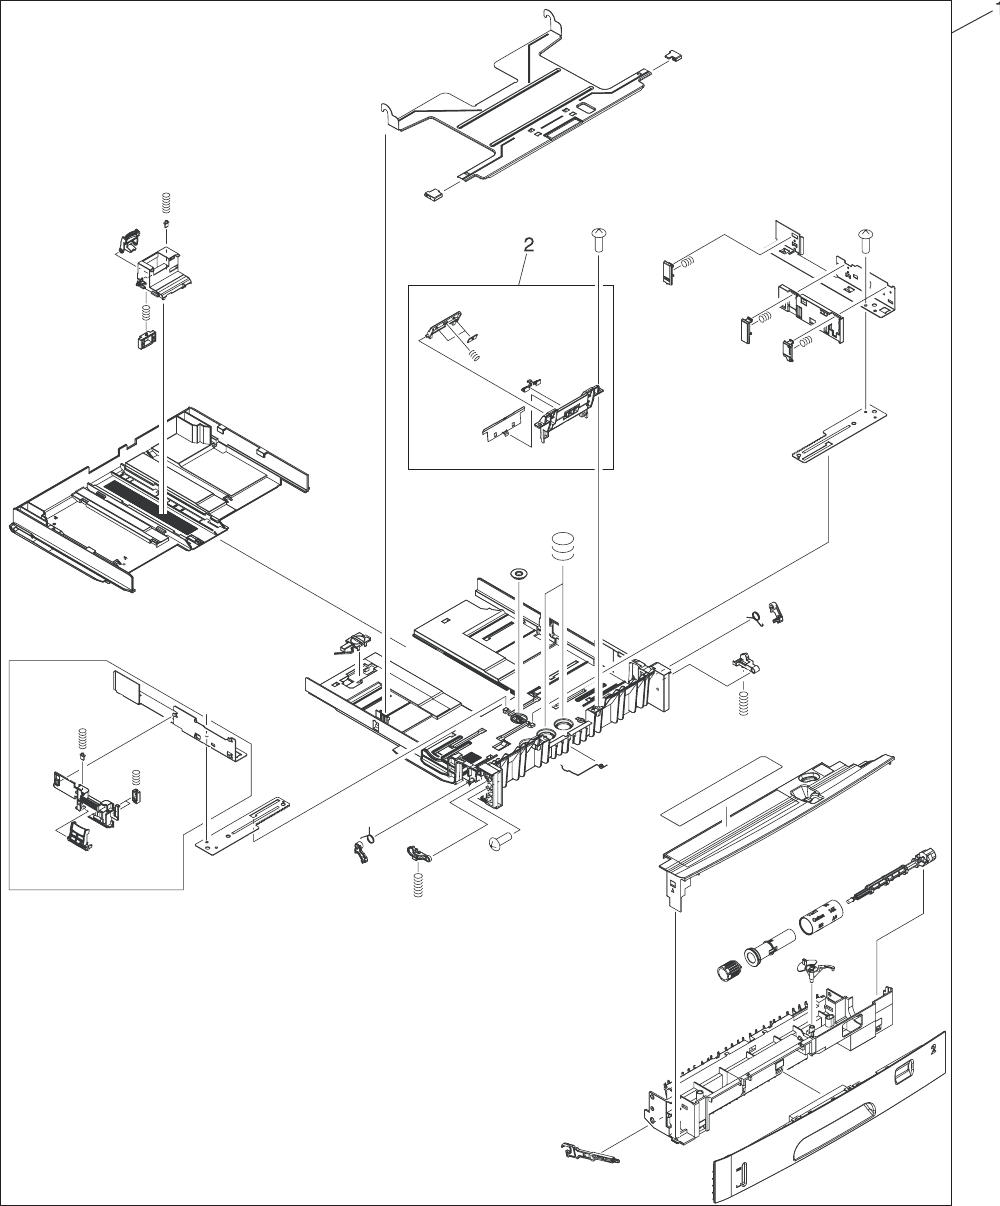 Rm1 2896 000cn Hp New 500 Sheet Feeder Paper Pick Up Assembly Schematic Maker Jam And Jelly Diagram Image In Cassette Tray 2